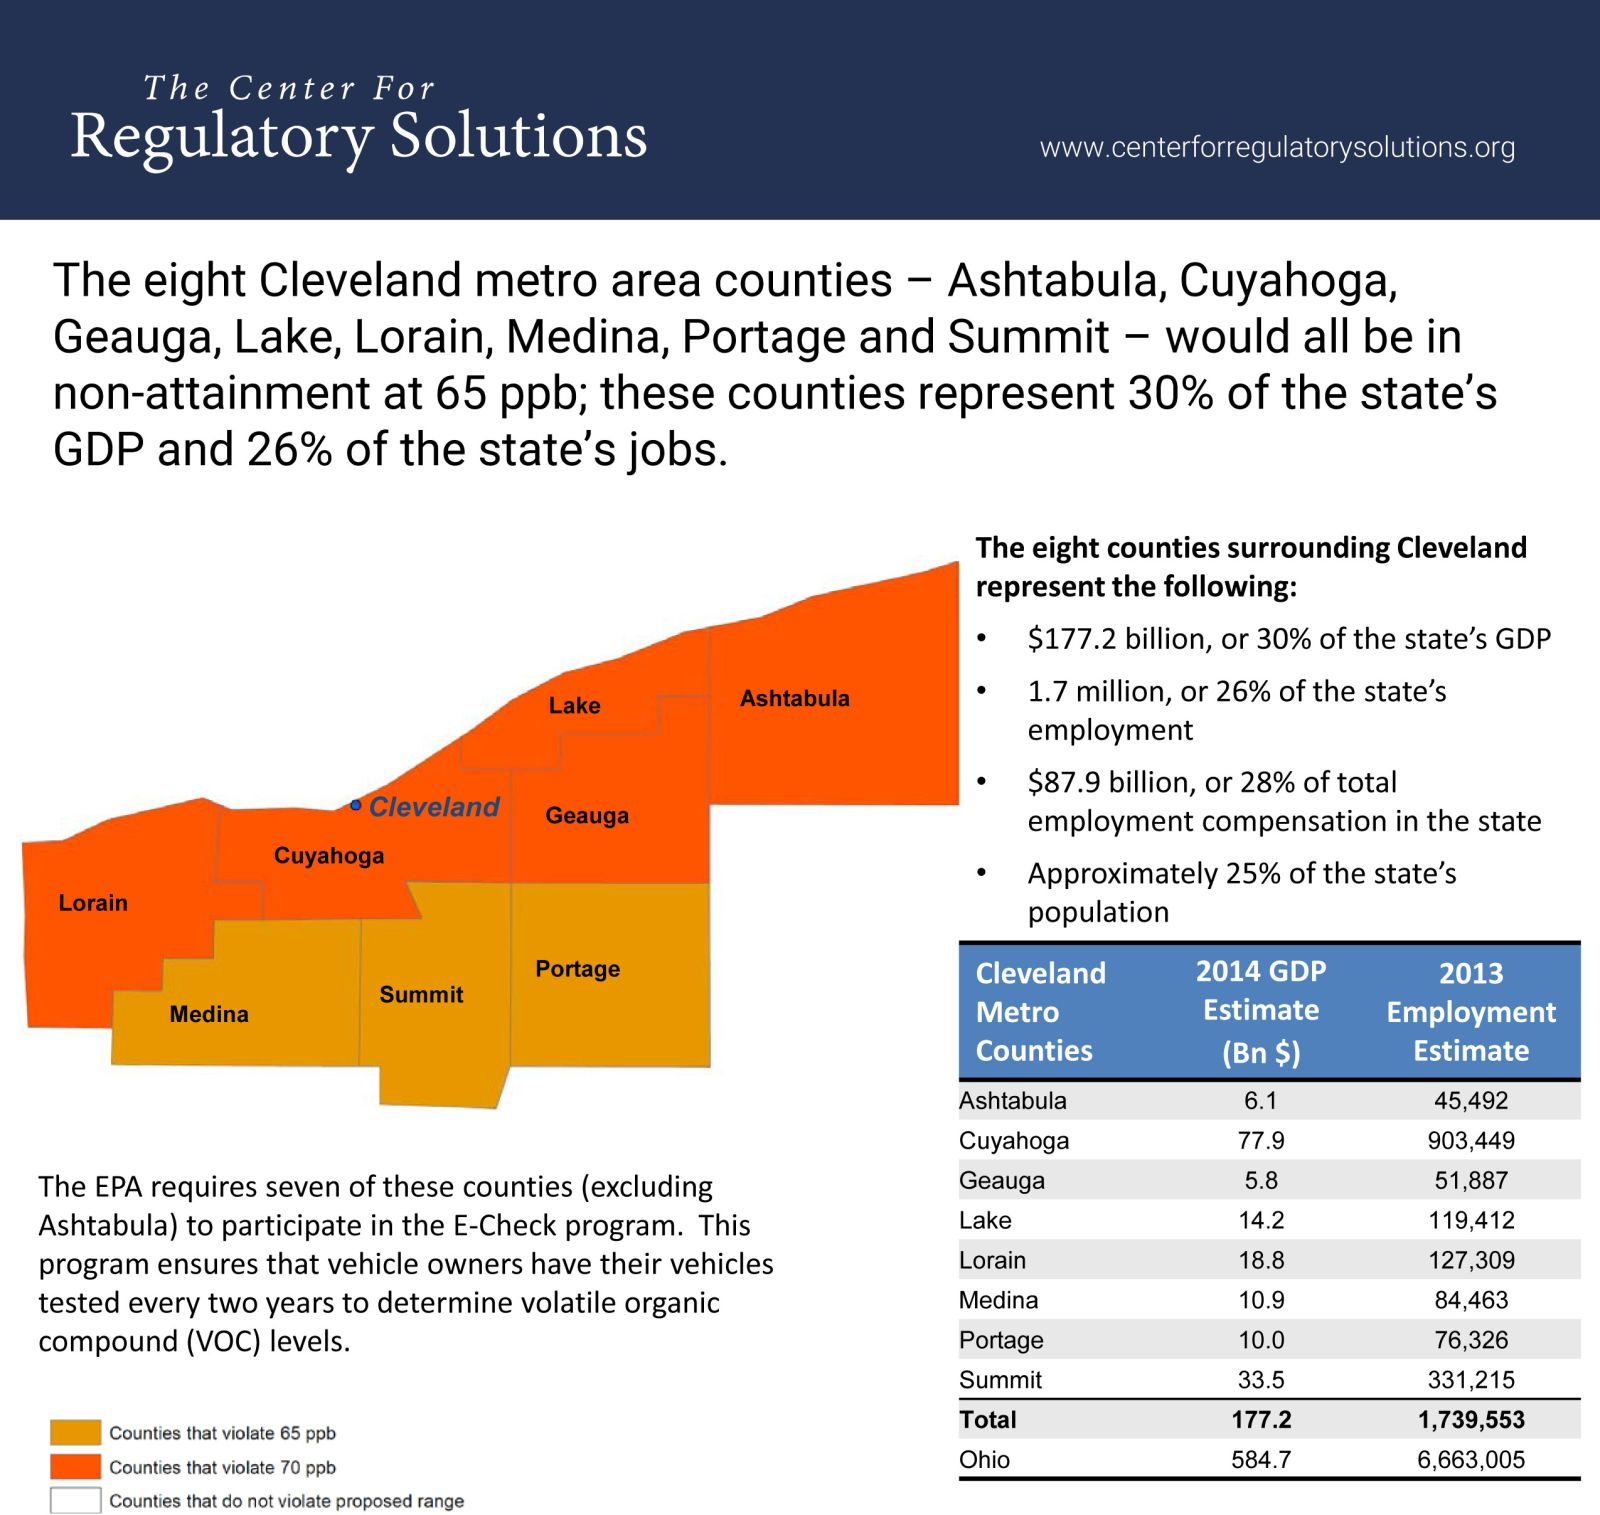 Cleveland-area counties affected by EPA ozone standards